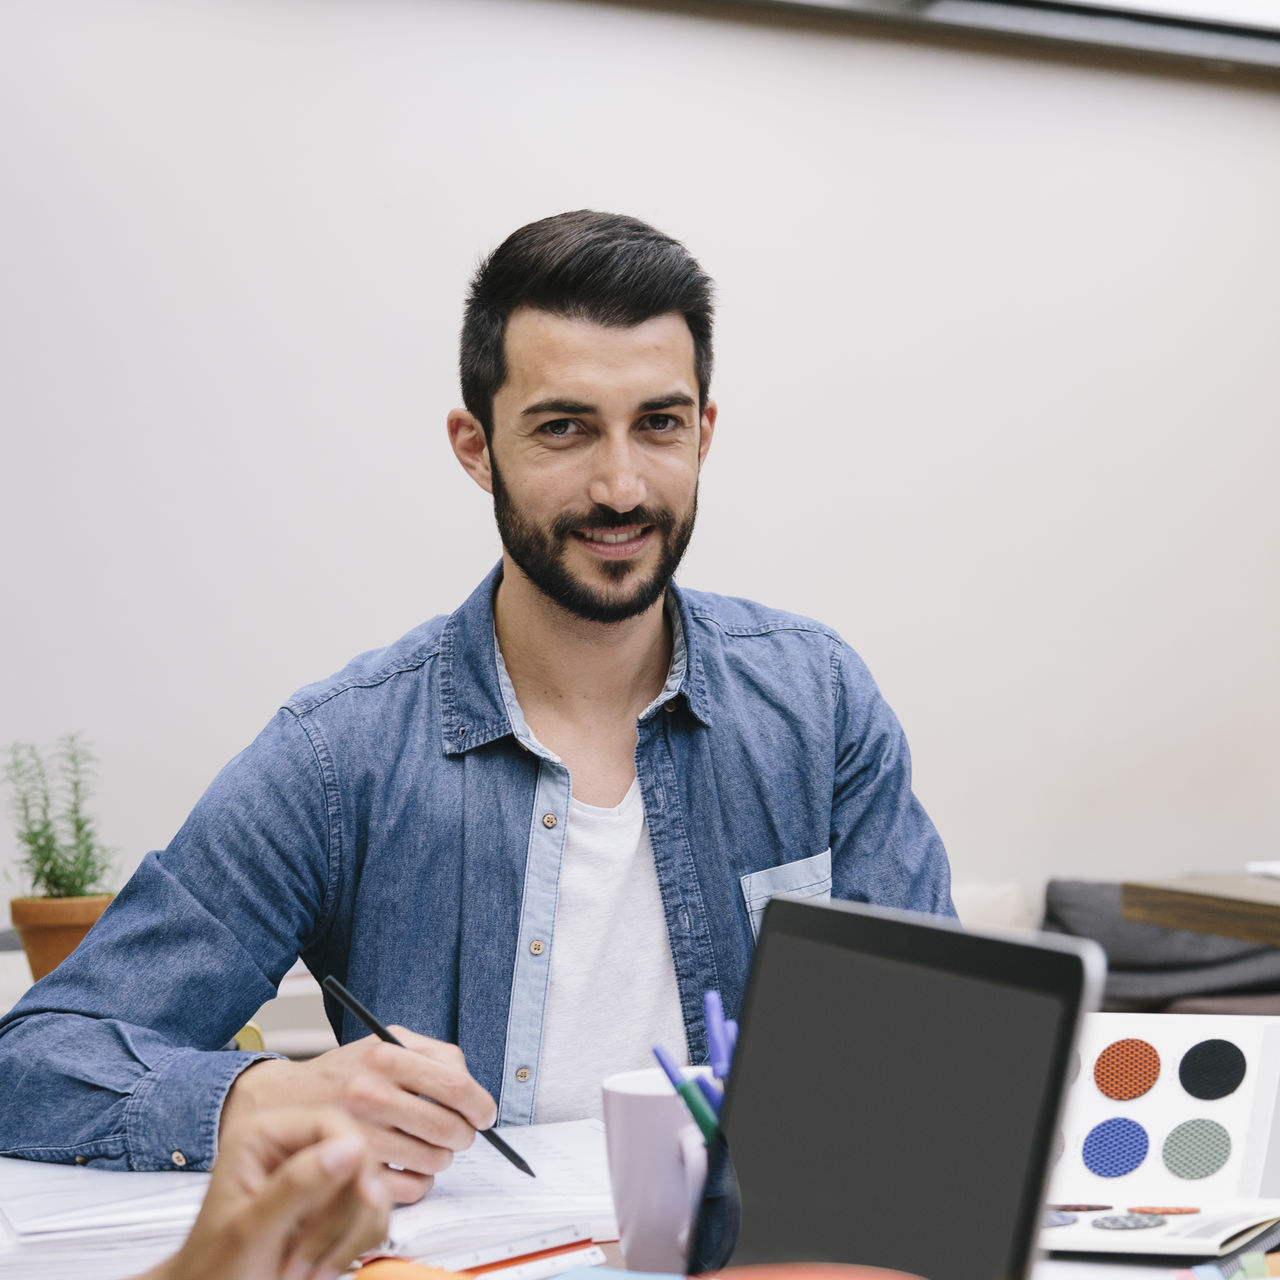 Beard Businessman Casual Clothing Color Chart Computer Coworker Design Designer  Documents Entrepreneur Ideas Laptop Office Seated Startup Work Working Young Man